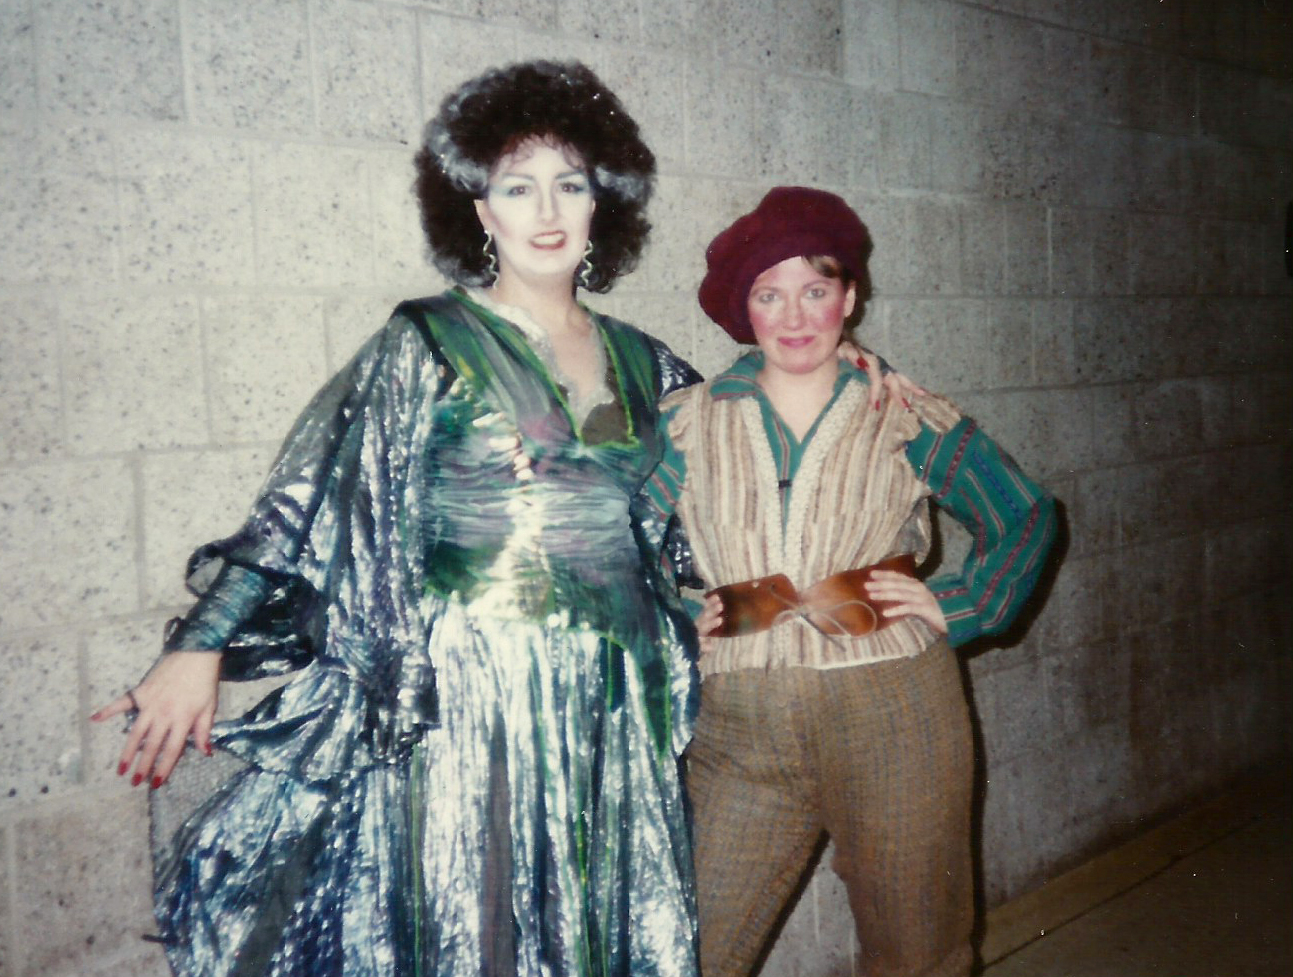 Opera at Florham, Rusalka, 1989 – Janice as Ježibaba